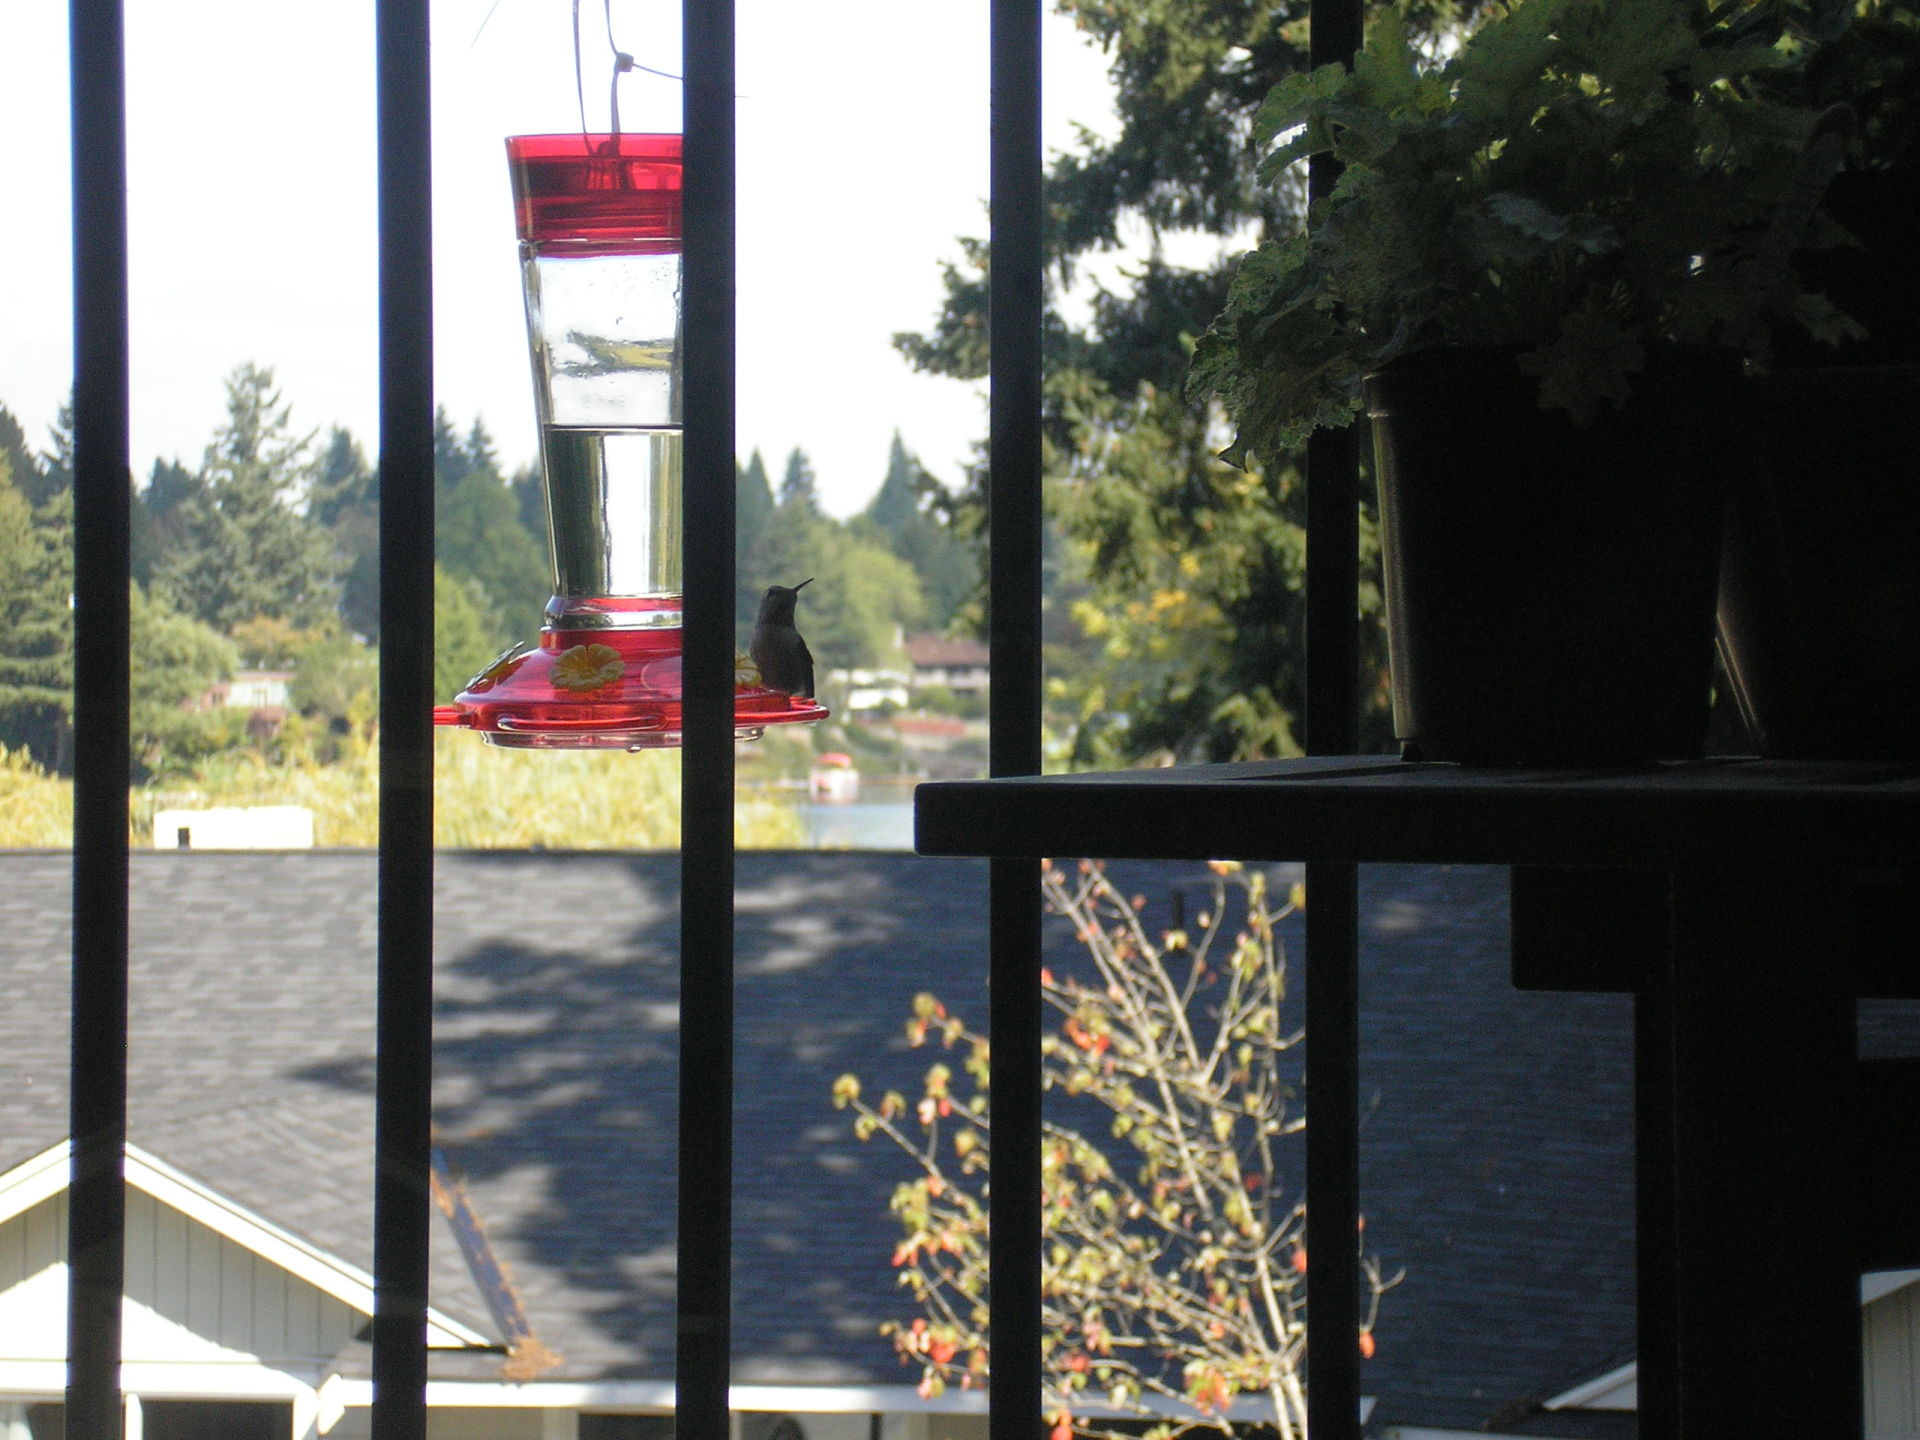 The hummingbird feeder